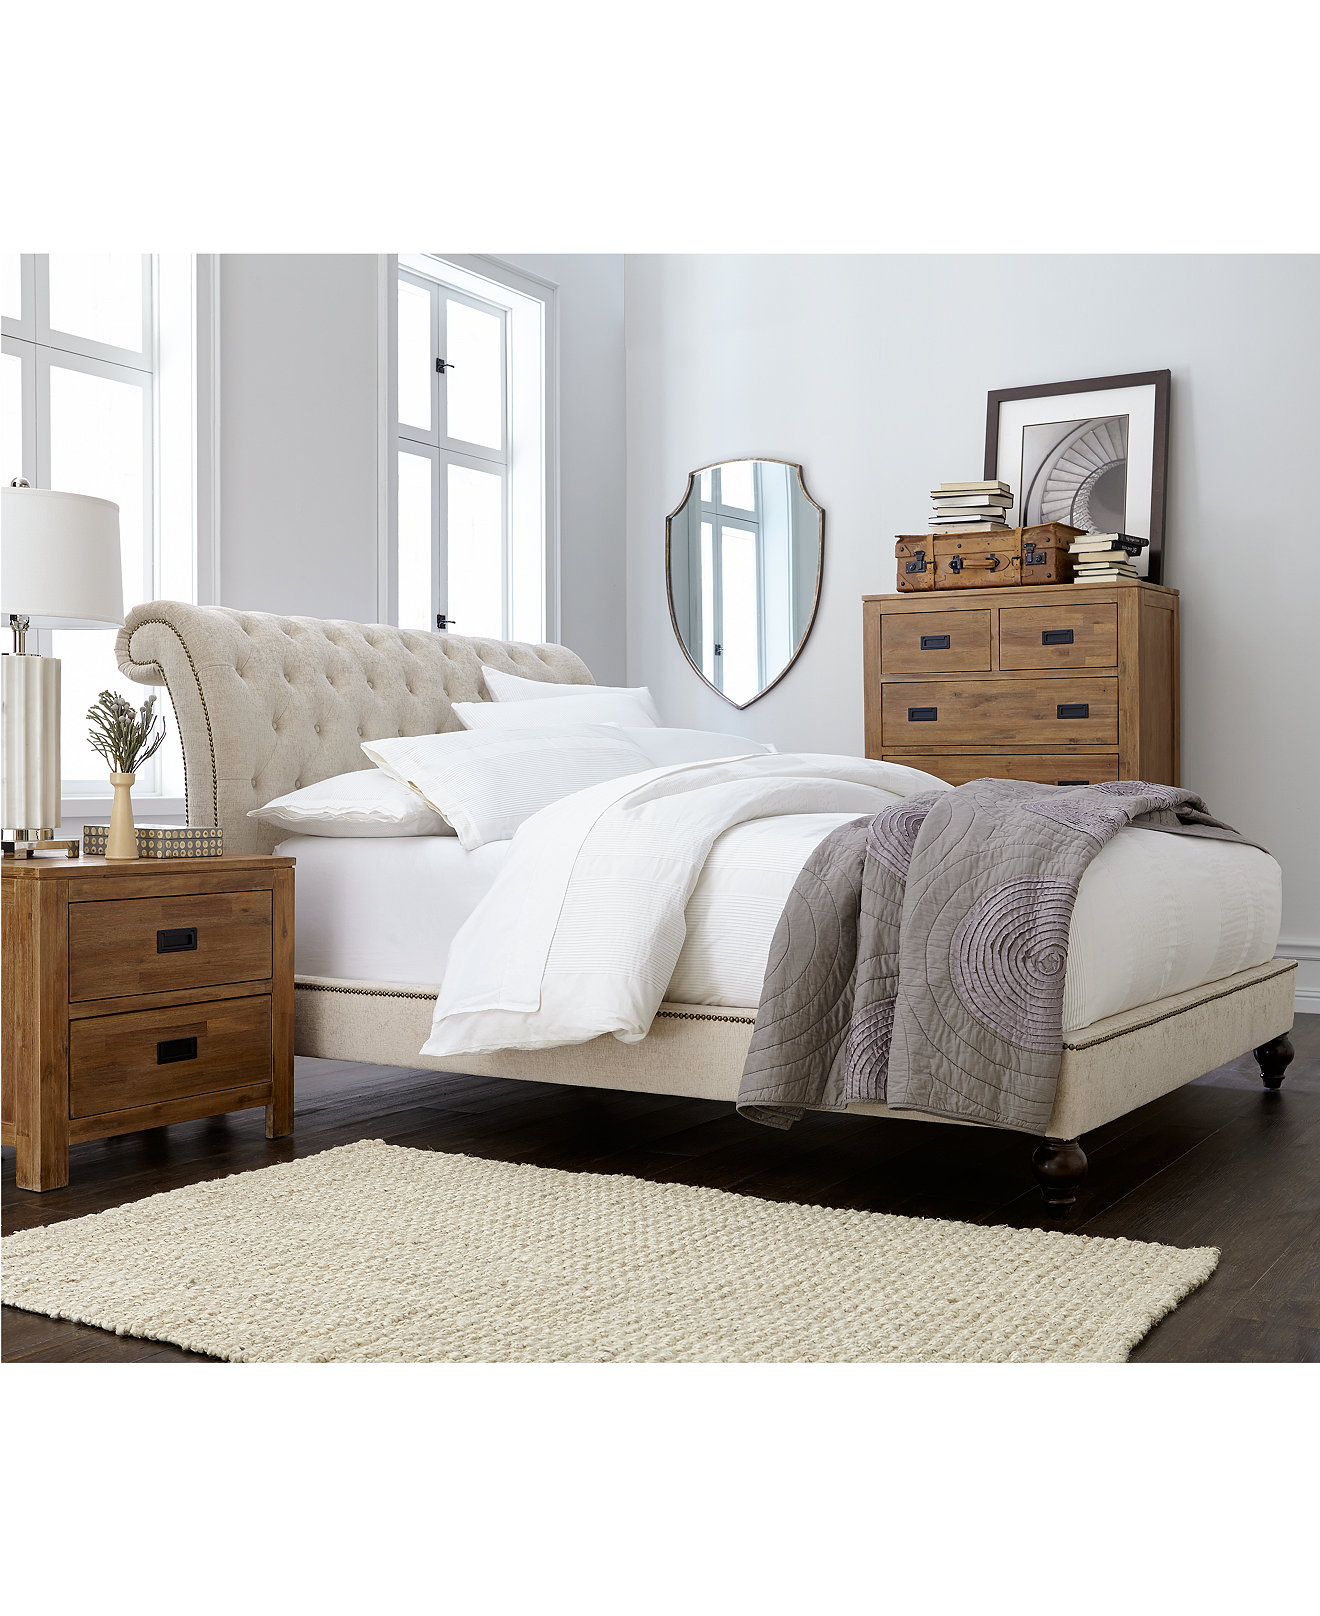 Mirrored Bedroom Furniture Mirrored Furniture Shop Mirrored Furniture Macys